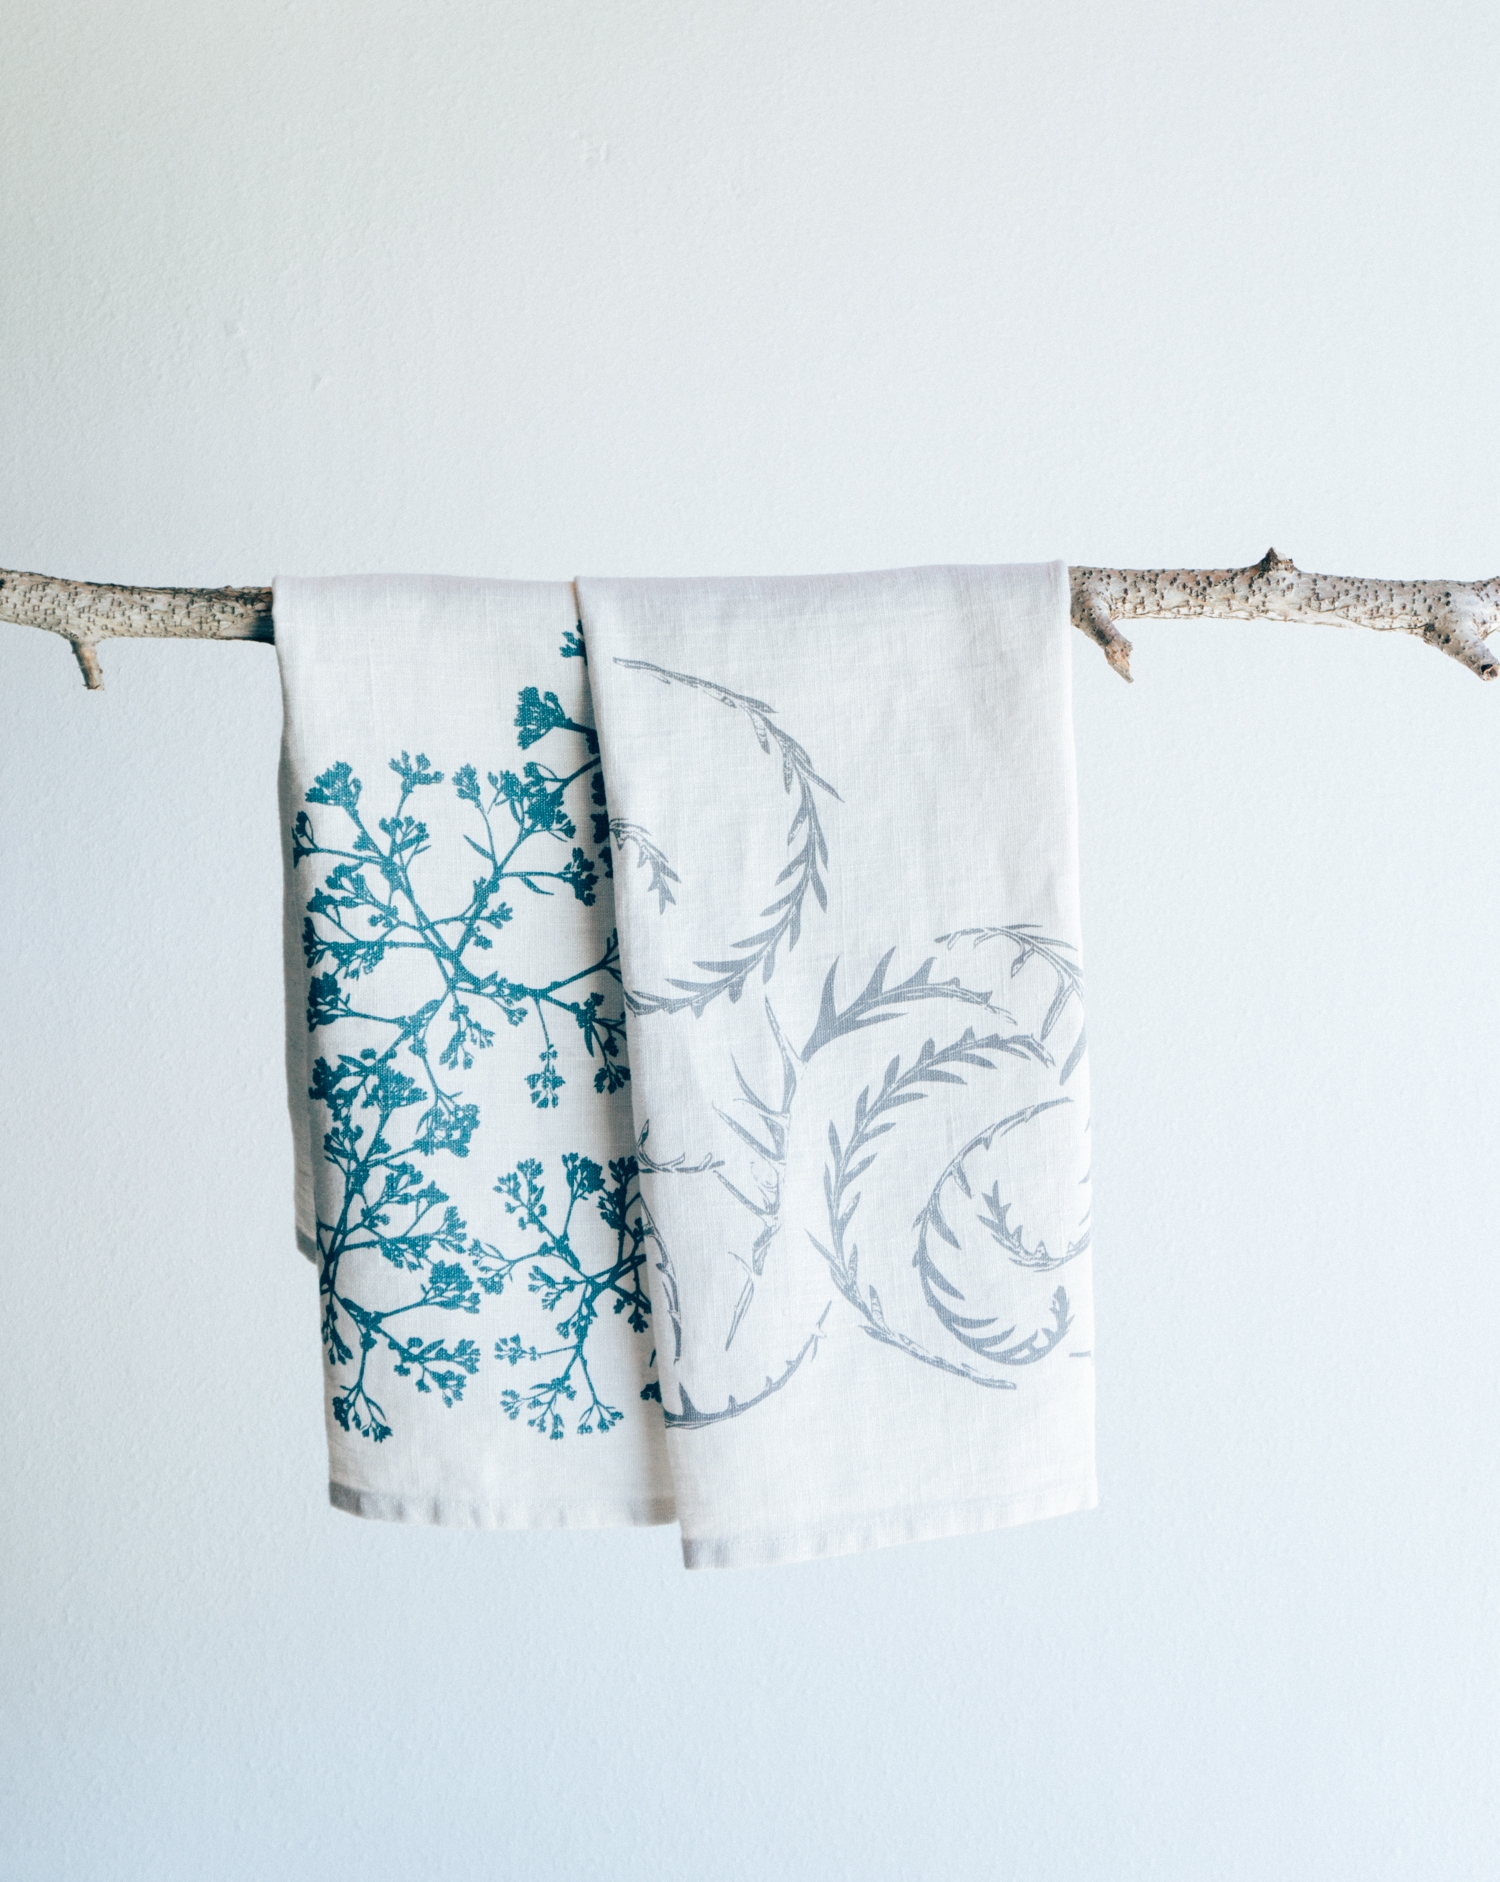 Regionally inspired and locally produced textiles for the kitchen and home.